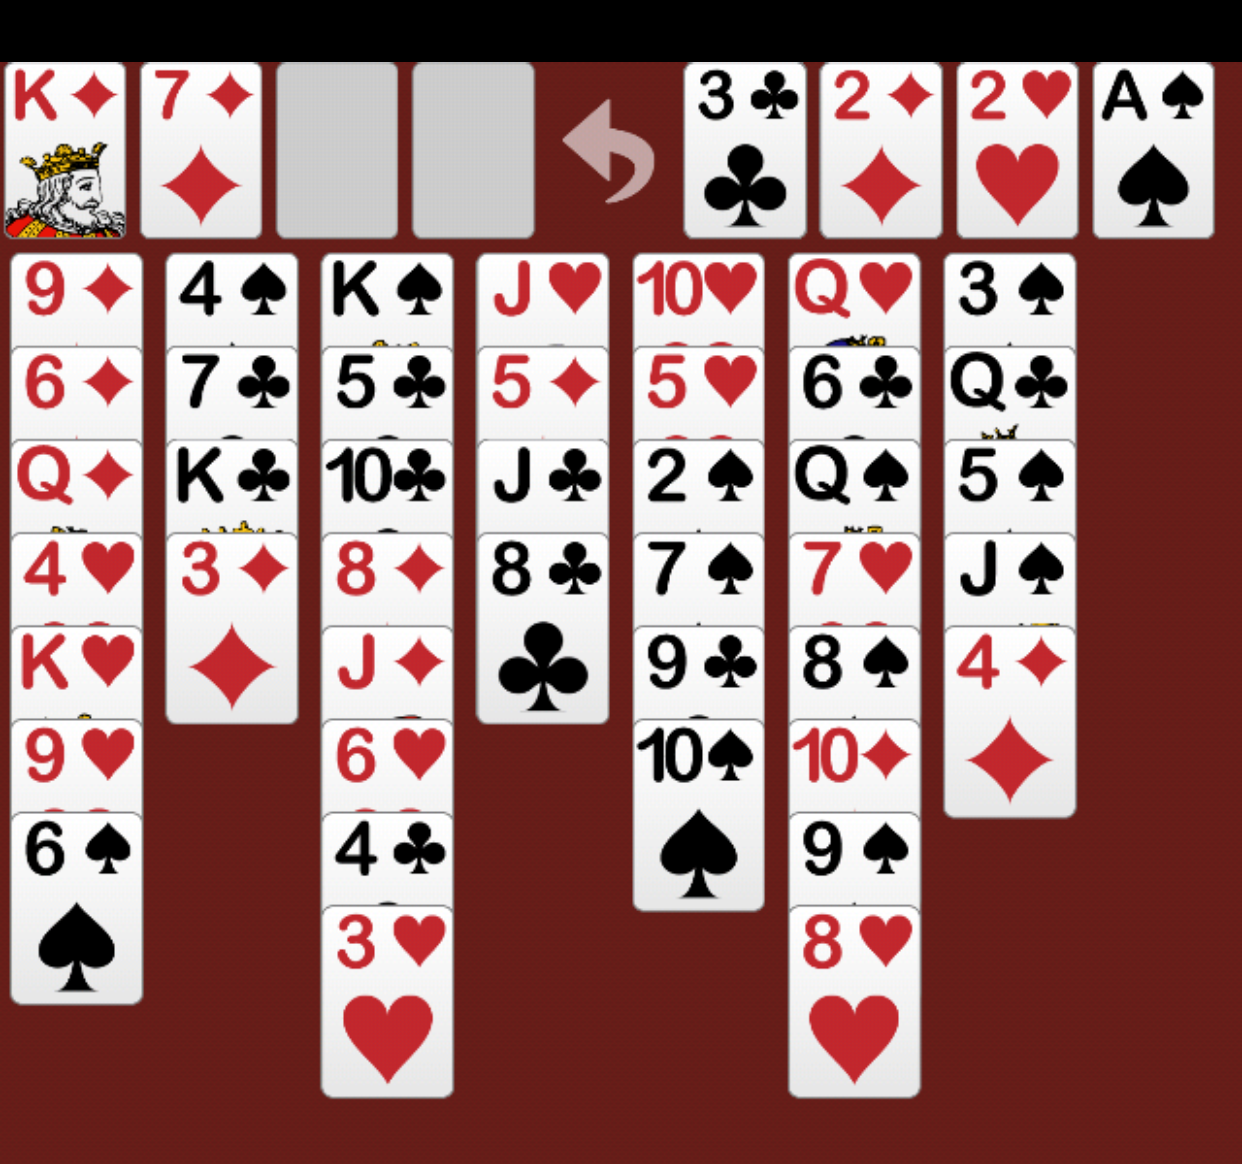 Freecell Pro Version 3.0